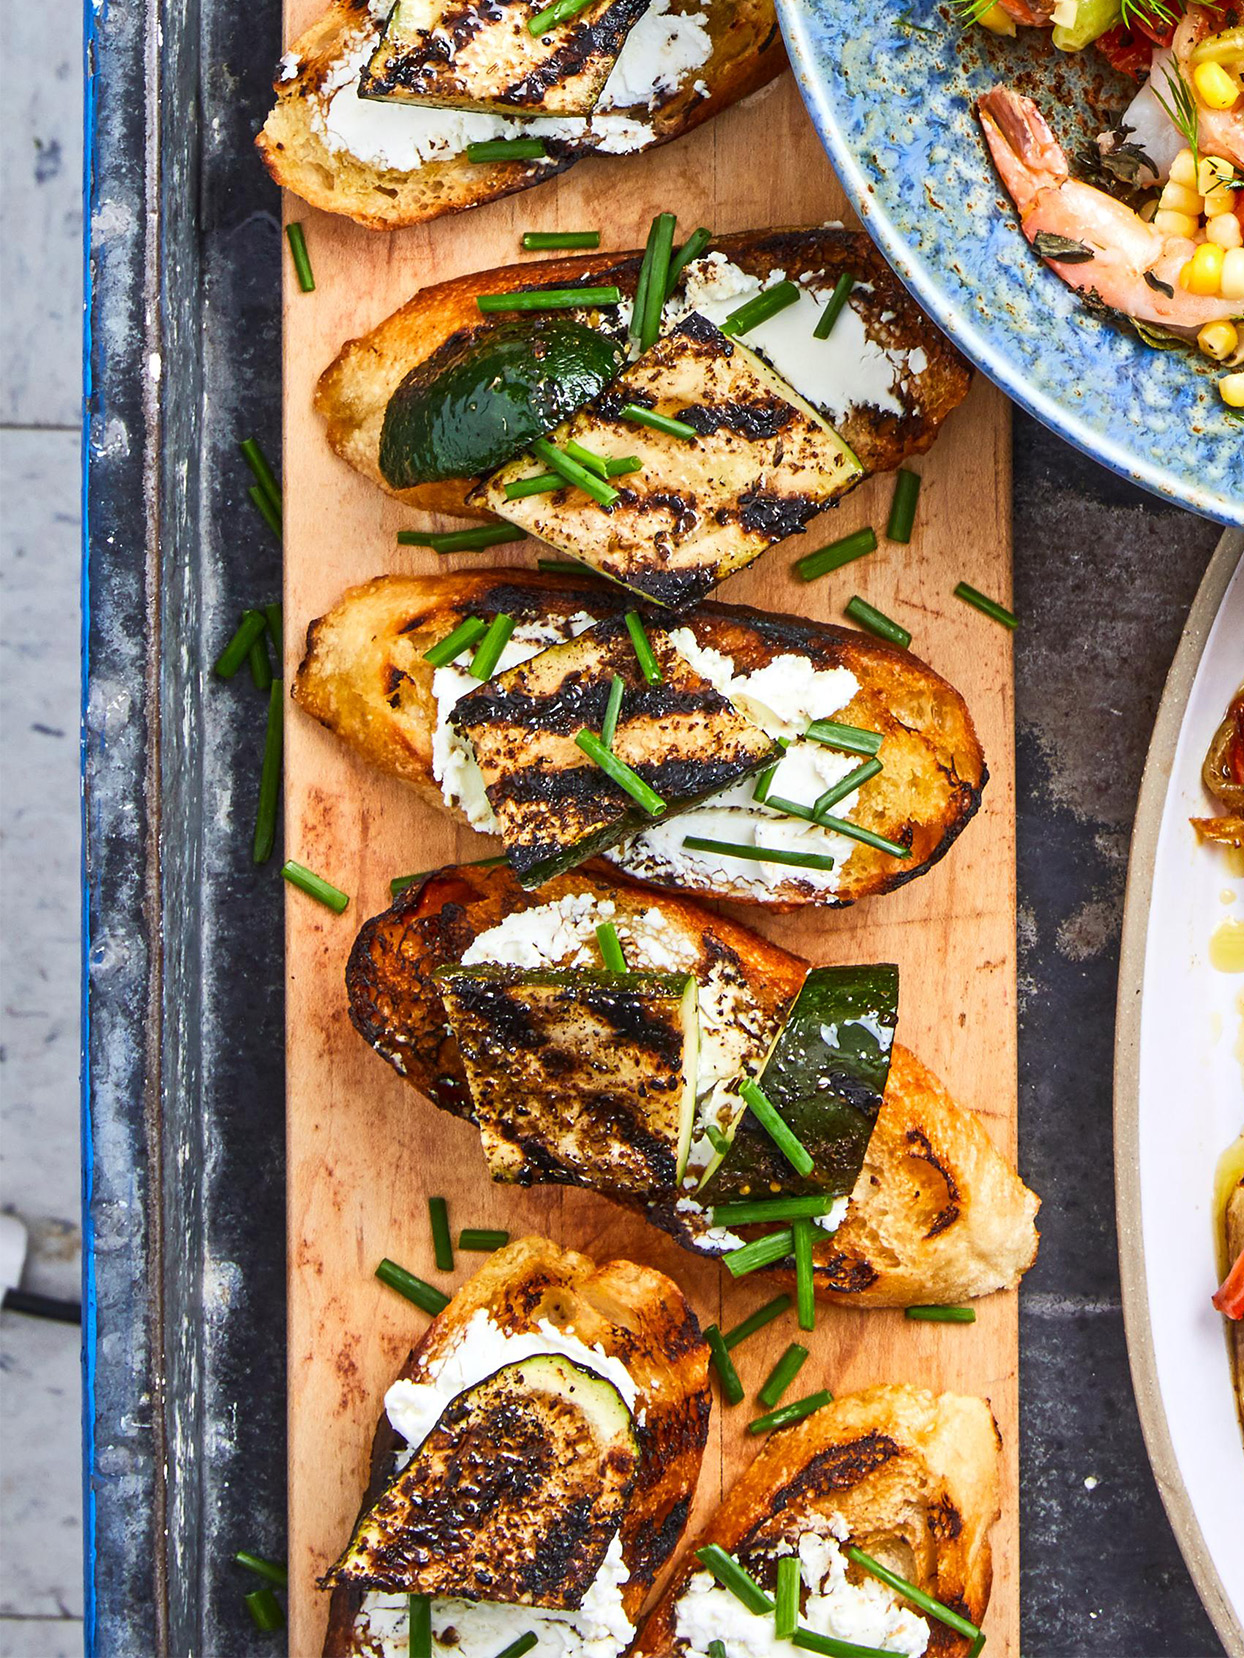 Grilled Zucchini and Goat Cheese Toasts